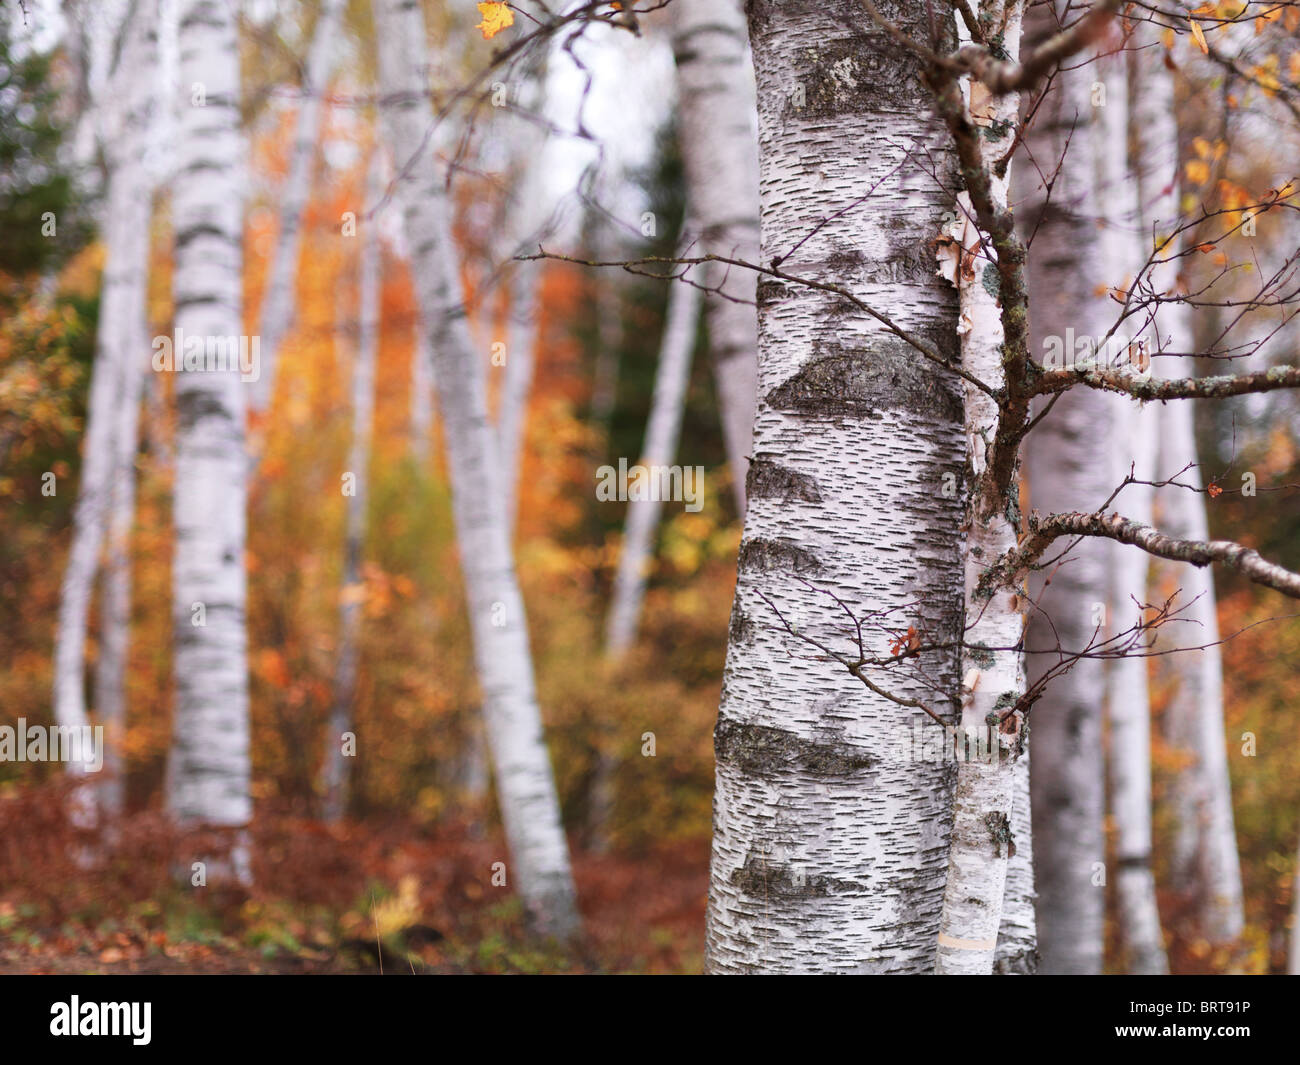 Fall nature scenery of birch trees with colorful yellow leaves in a forest. Arrowhead Provincial Park, Ontario, - Stock Image